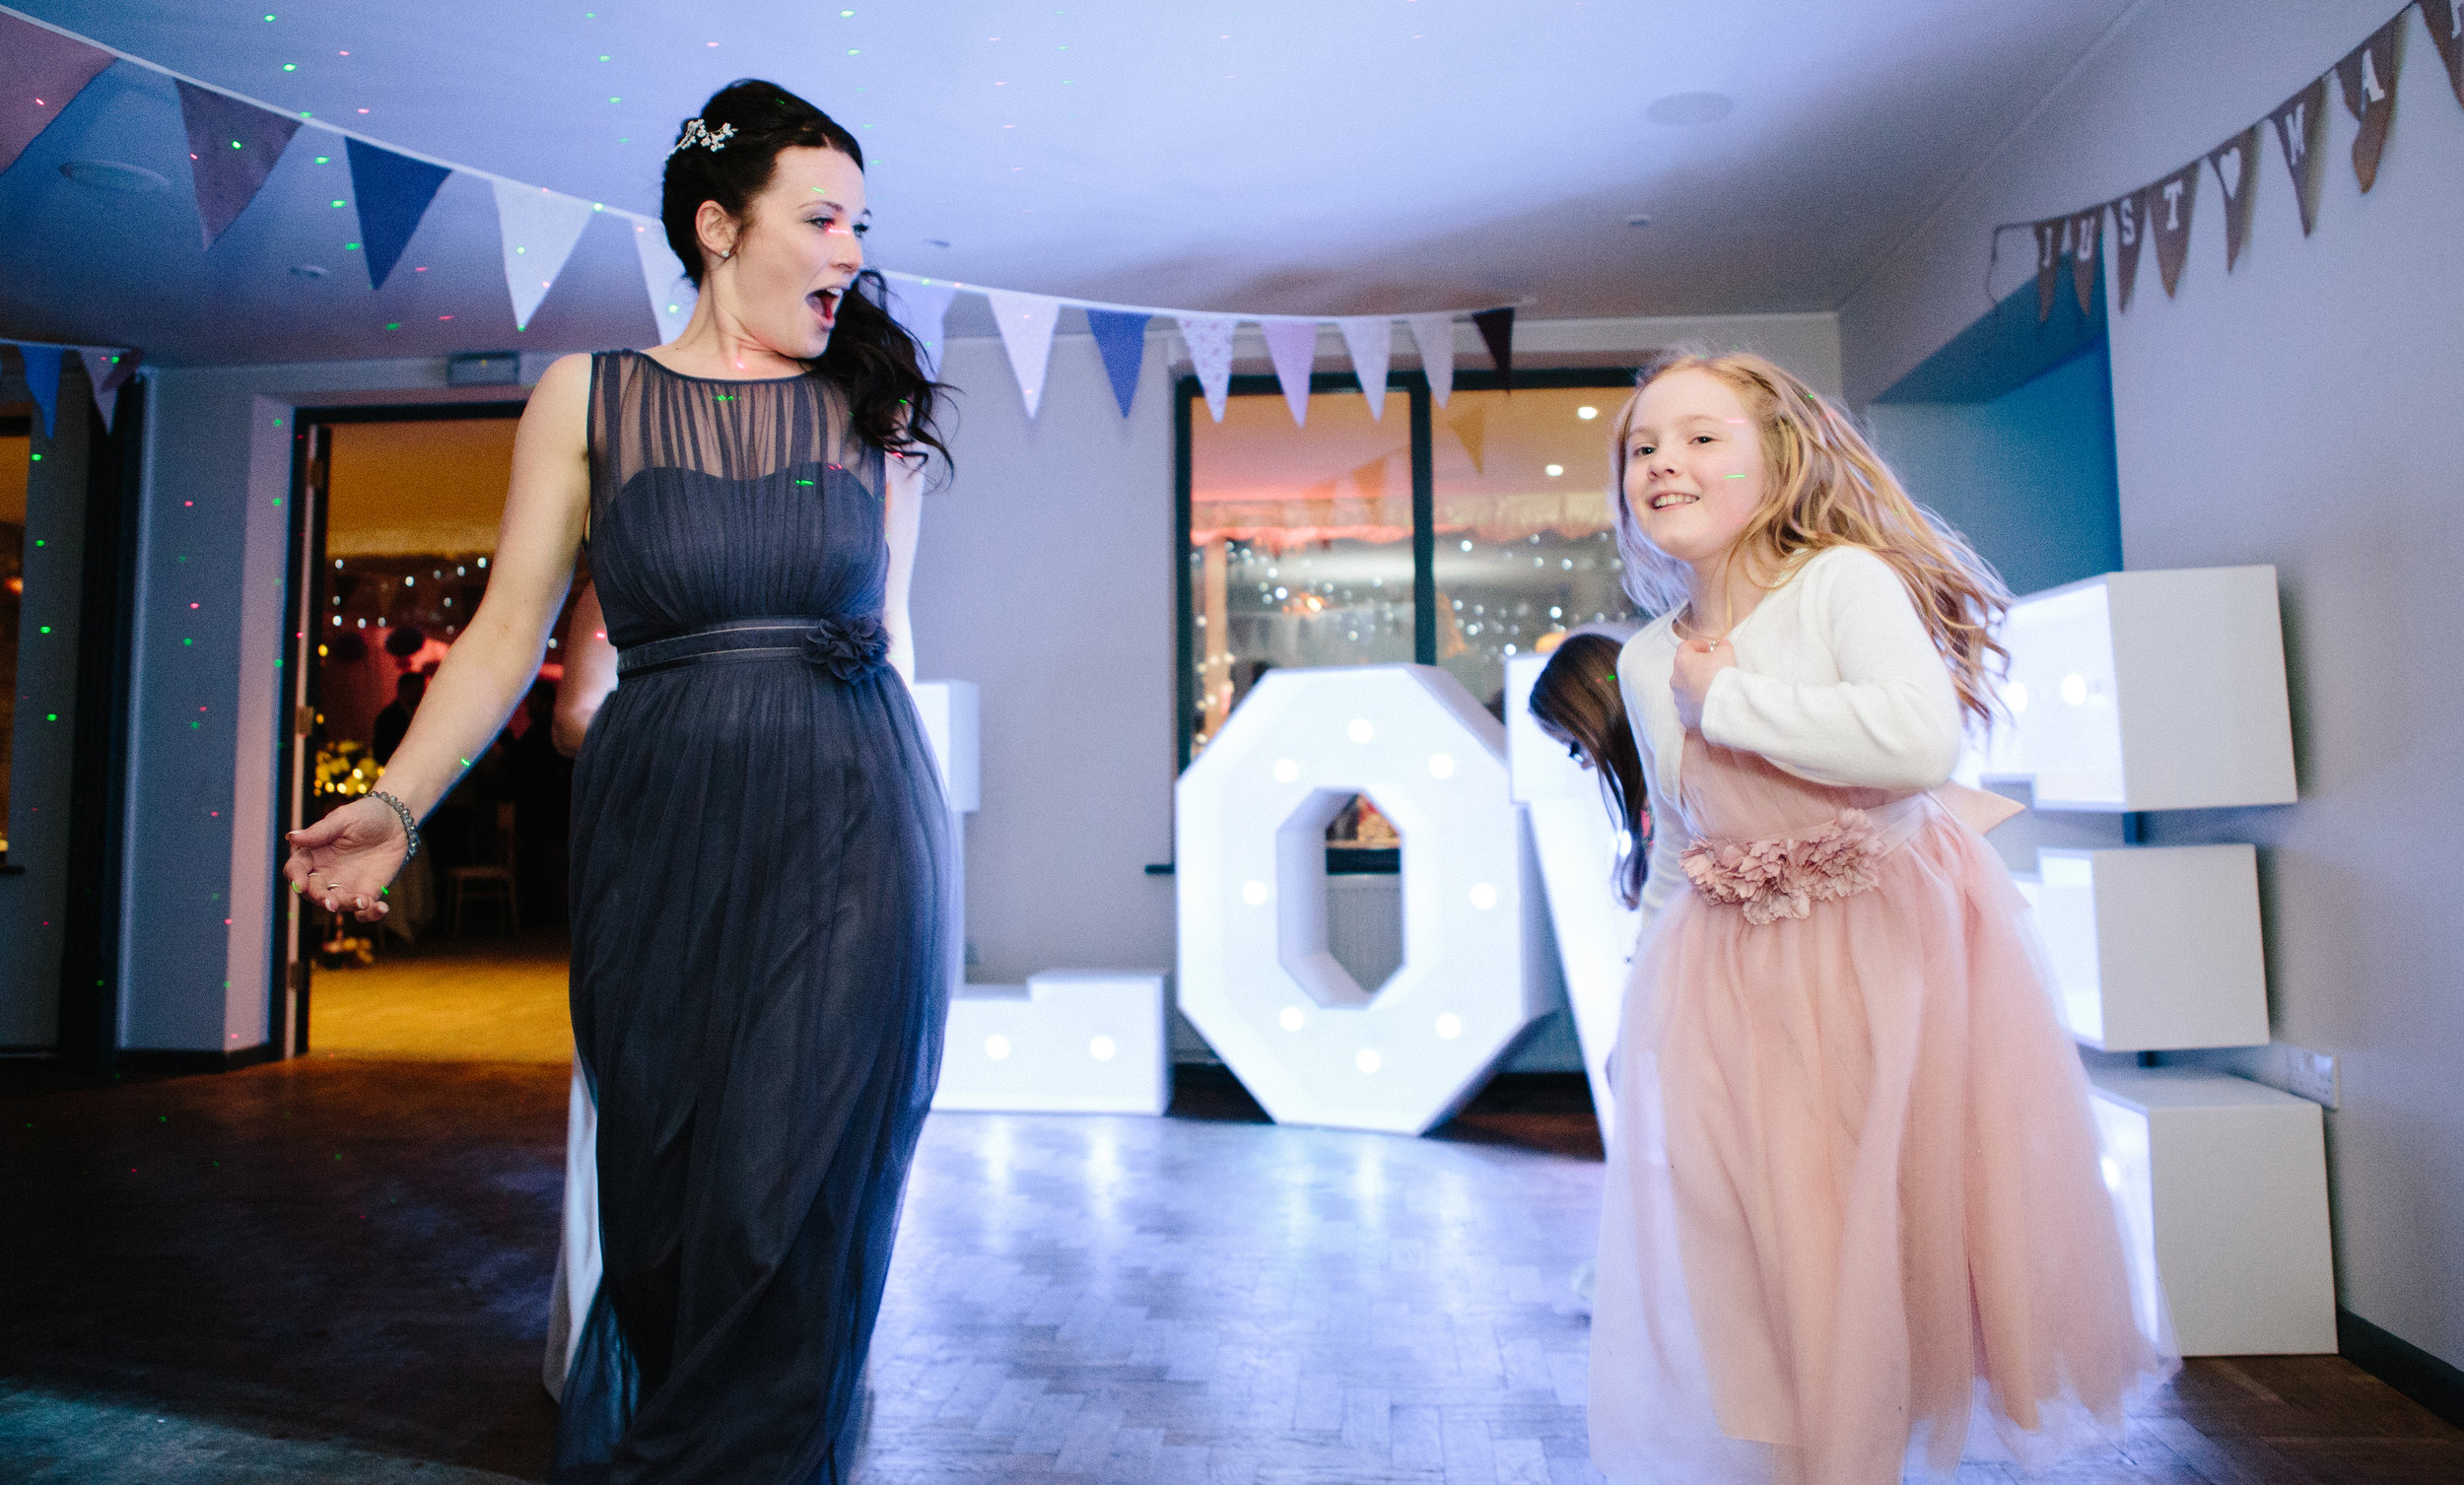 cotswalds-chipping-norton-oxfordshire-london-wedding-photography-bridesmaid-dance-51